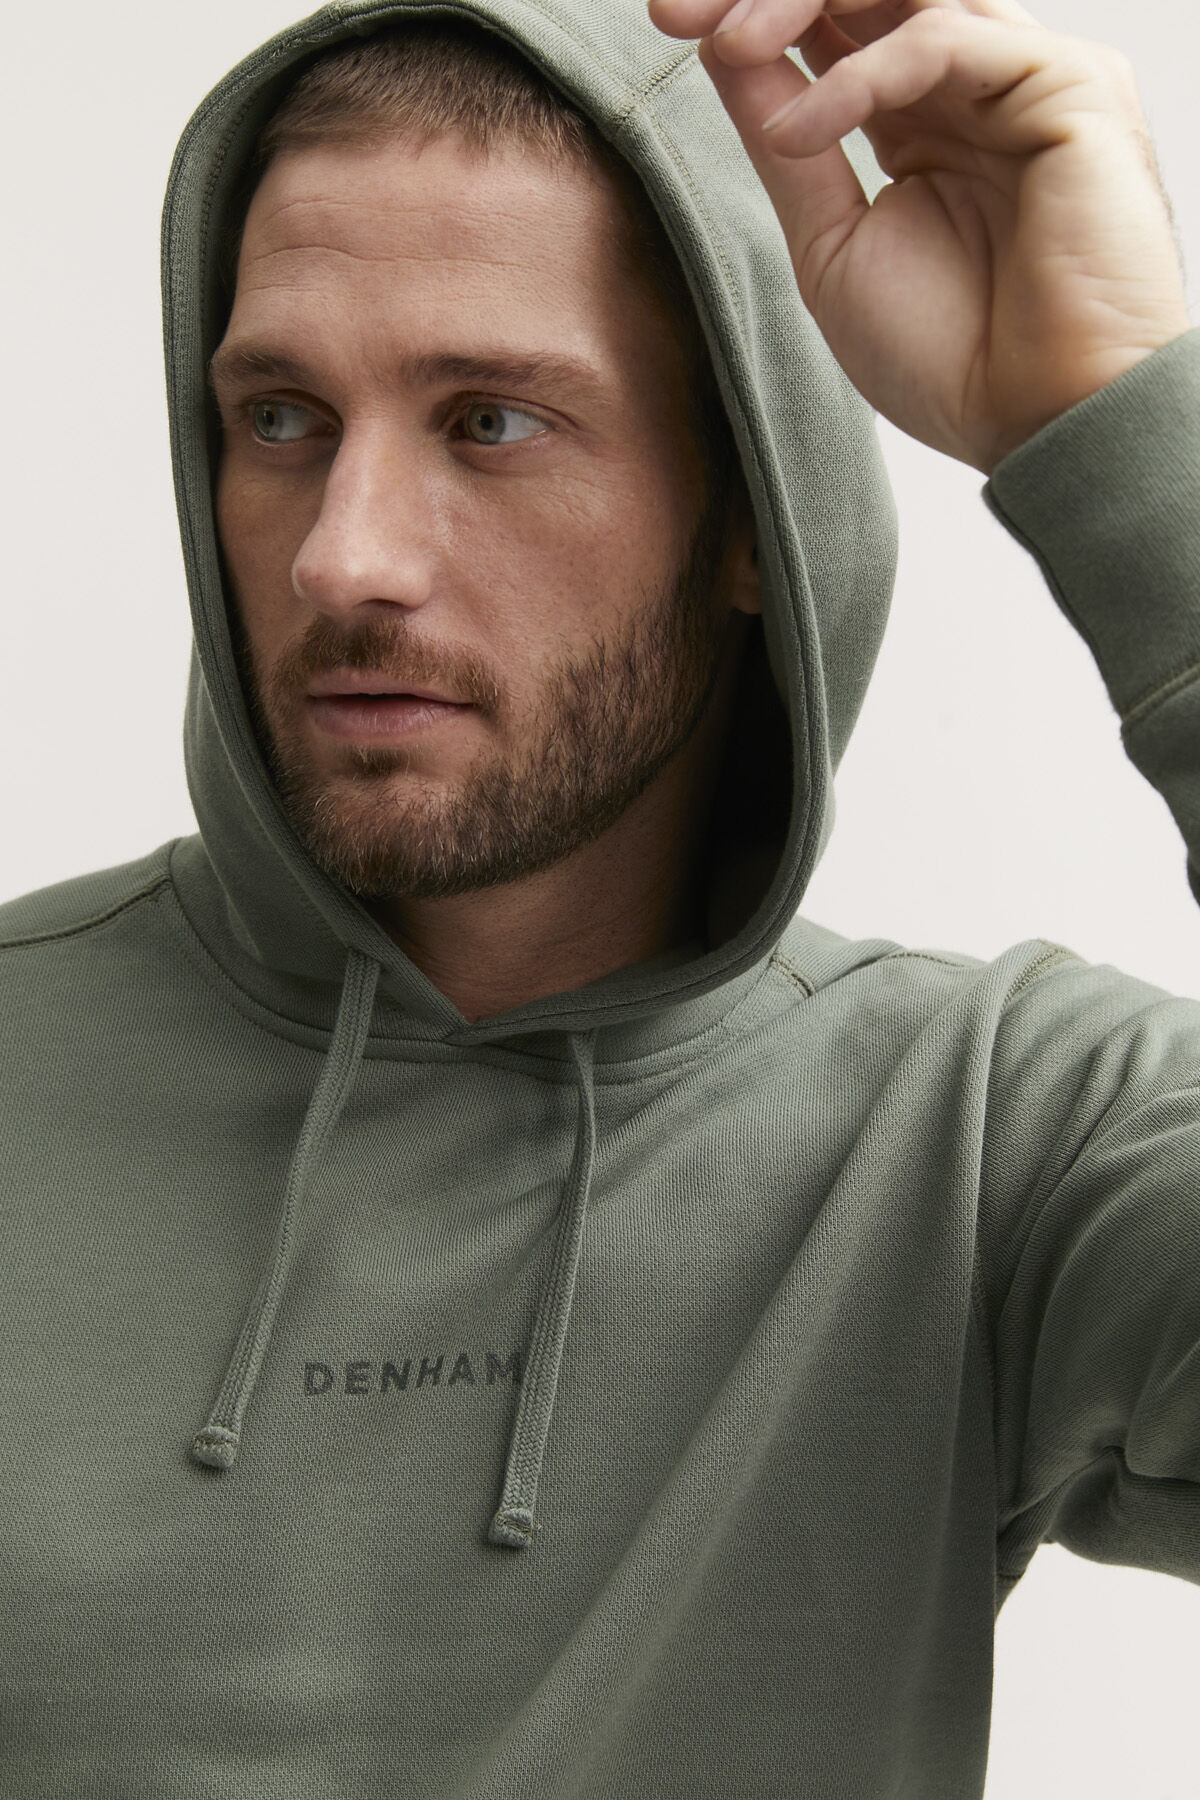 6 OCLOCK HOODY SOFT COTTON FLEECE - SLIM FIT